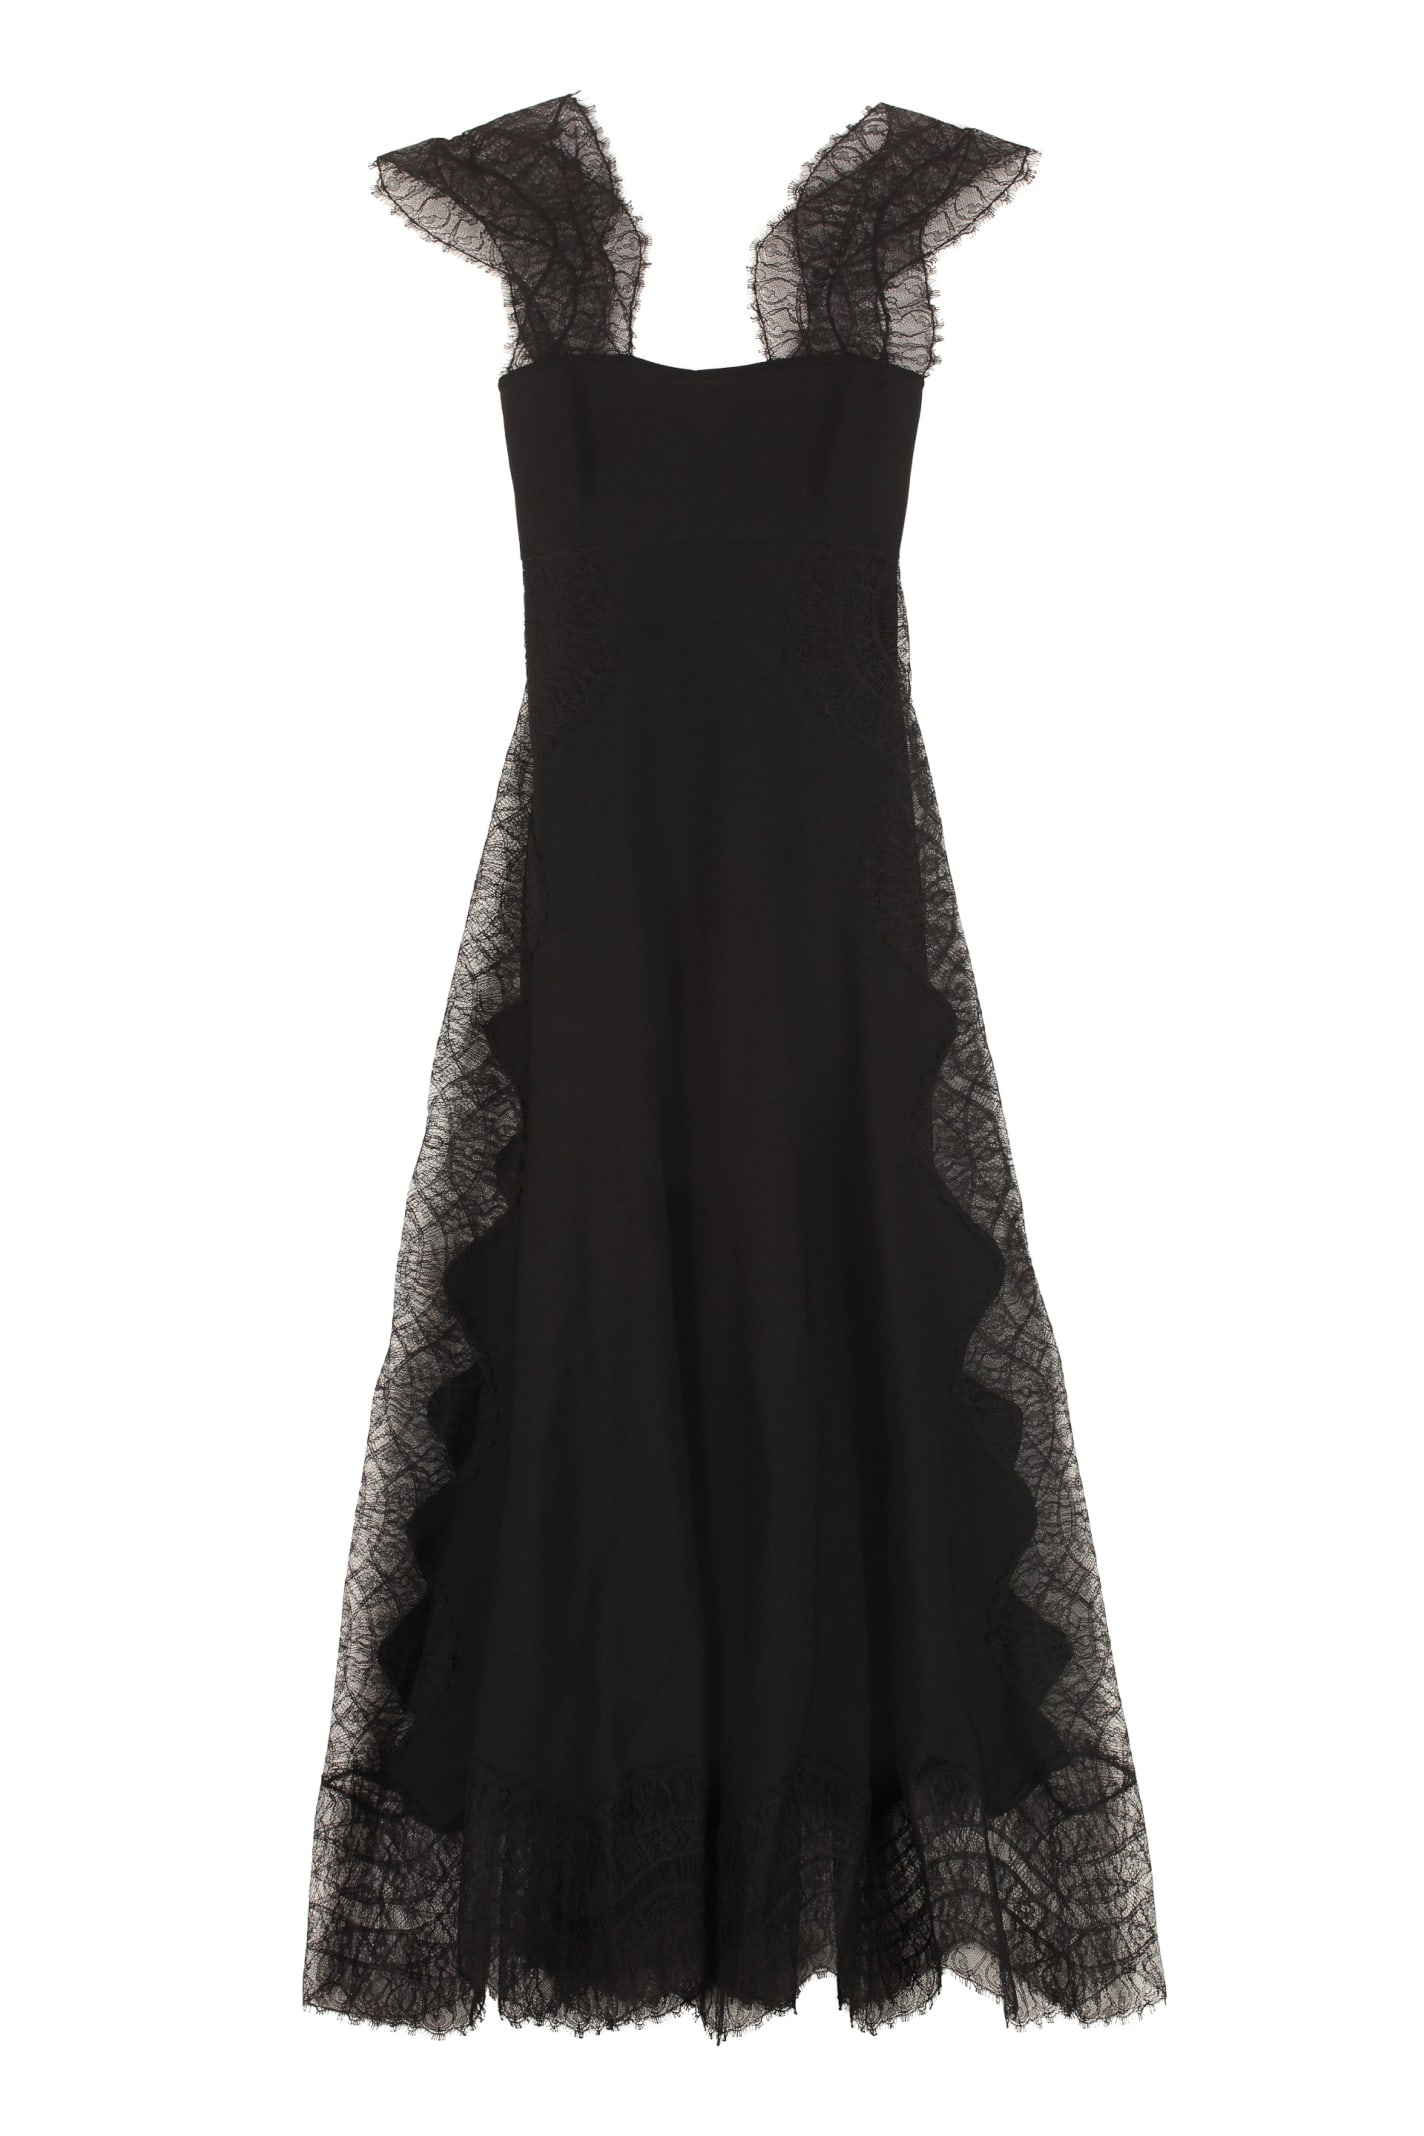 Buy Givenchy Lace Detail Crêpe Dress online, shop Givenchy with free shipping